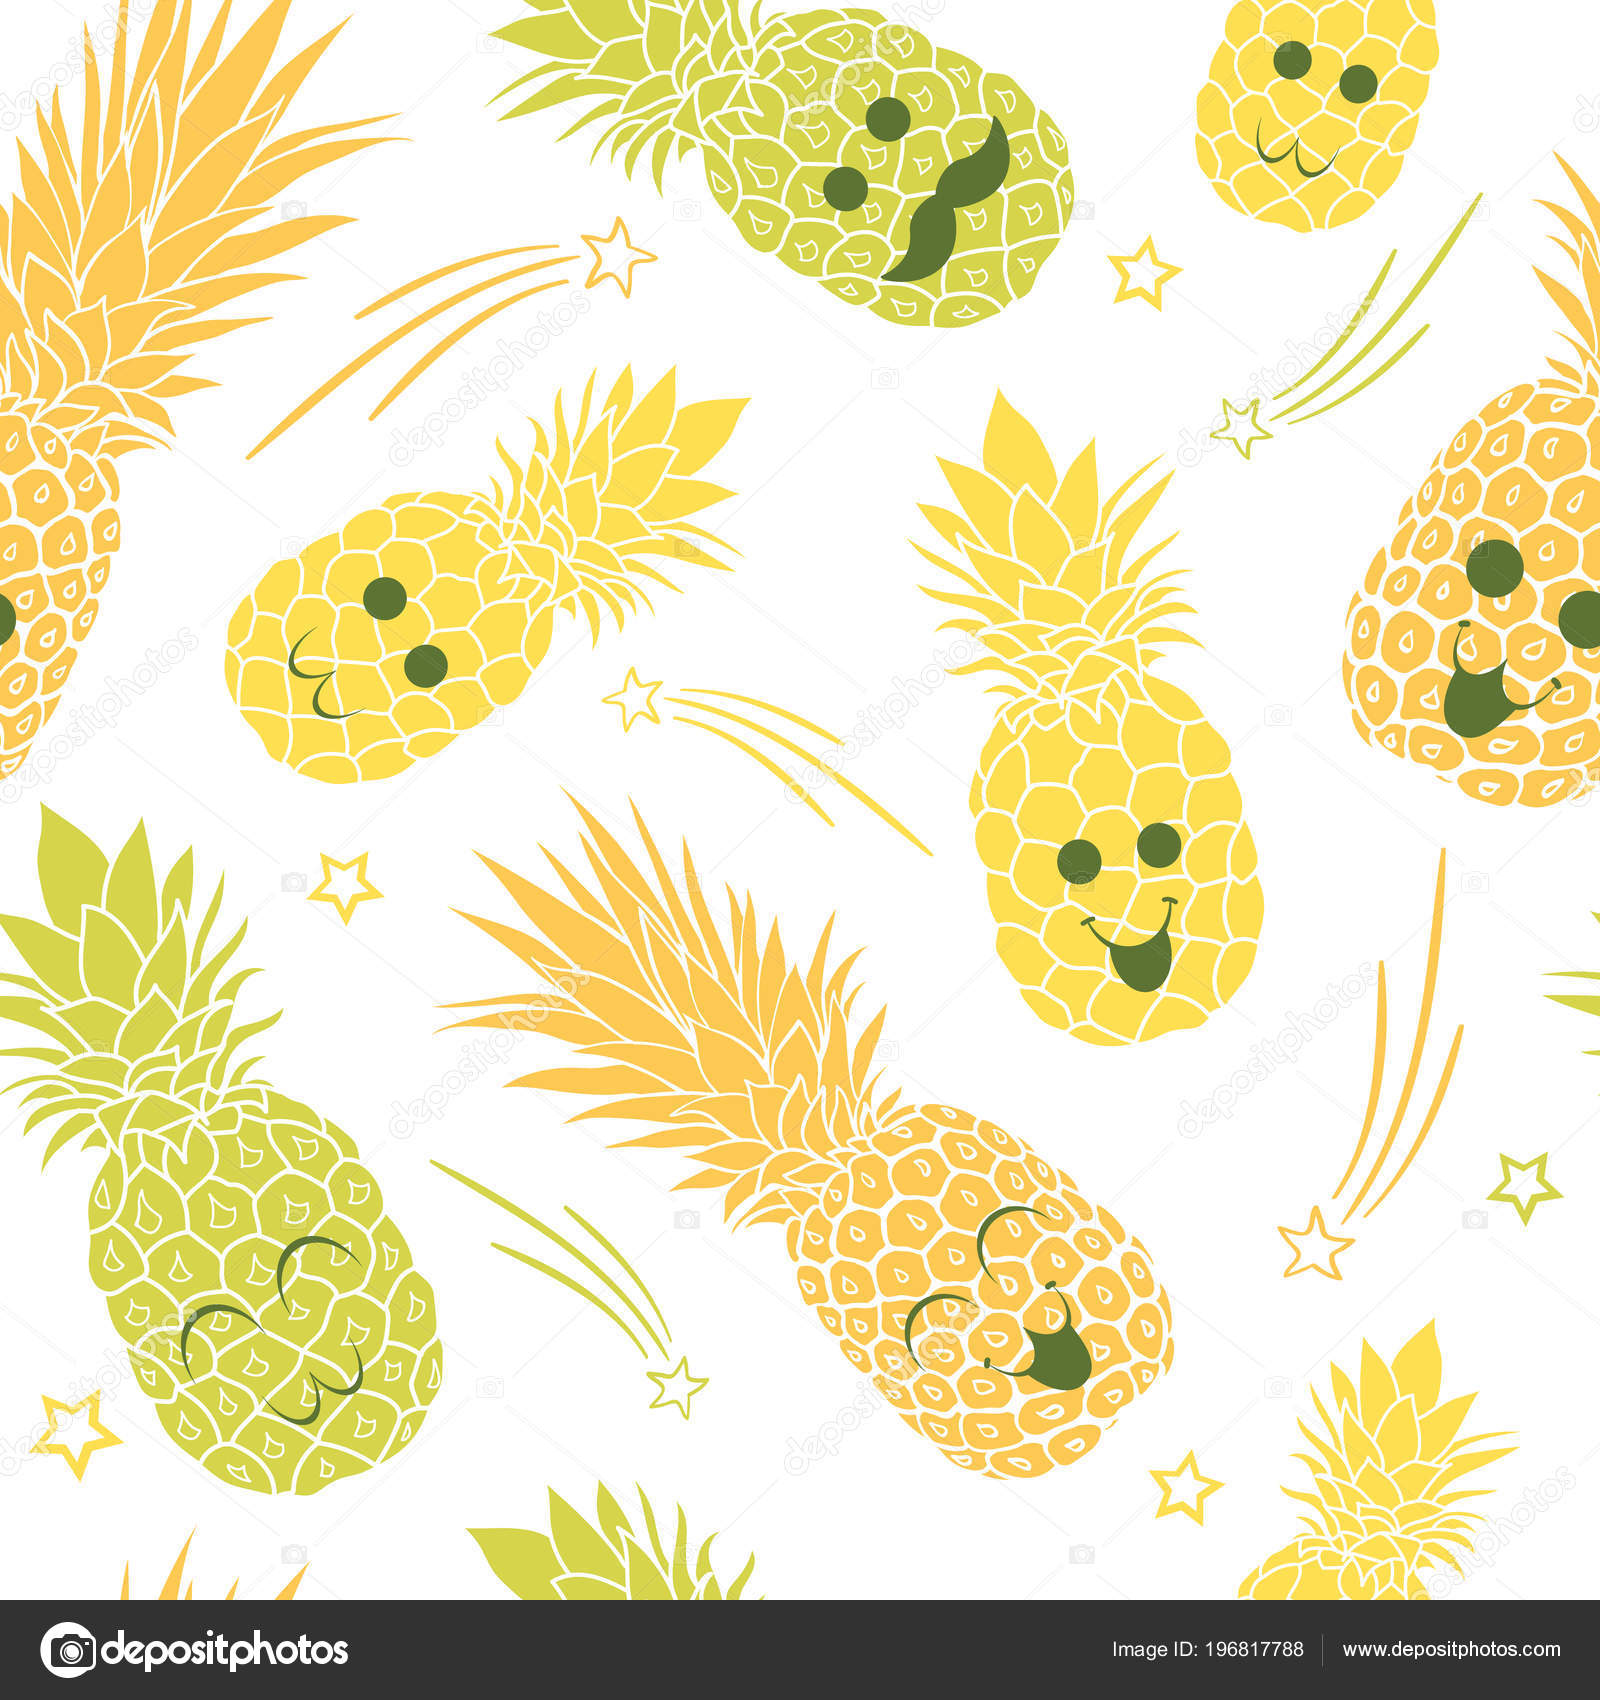 Wallpapers Cute Pineapple Cute Pineapple Family Seamless